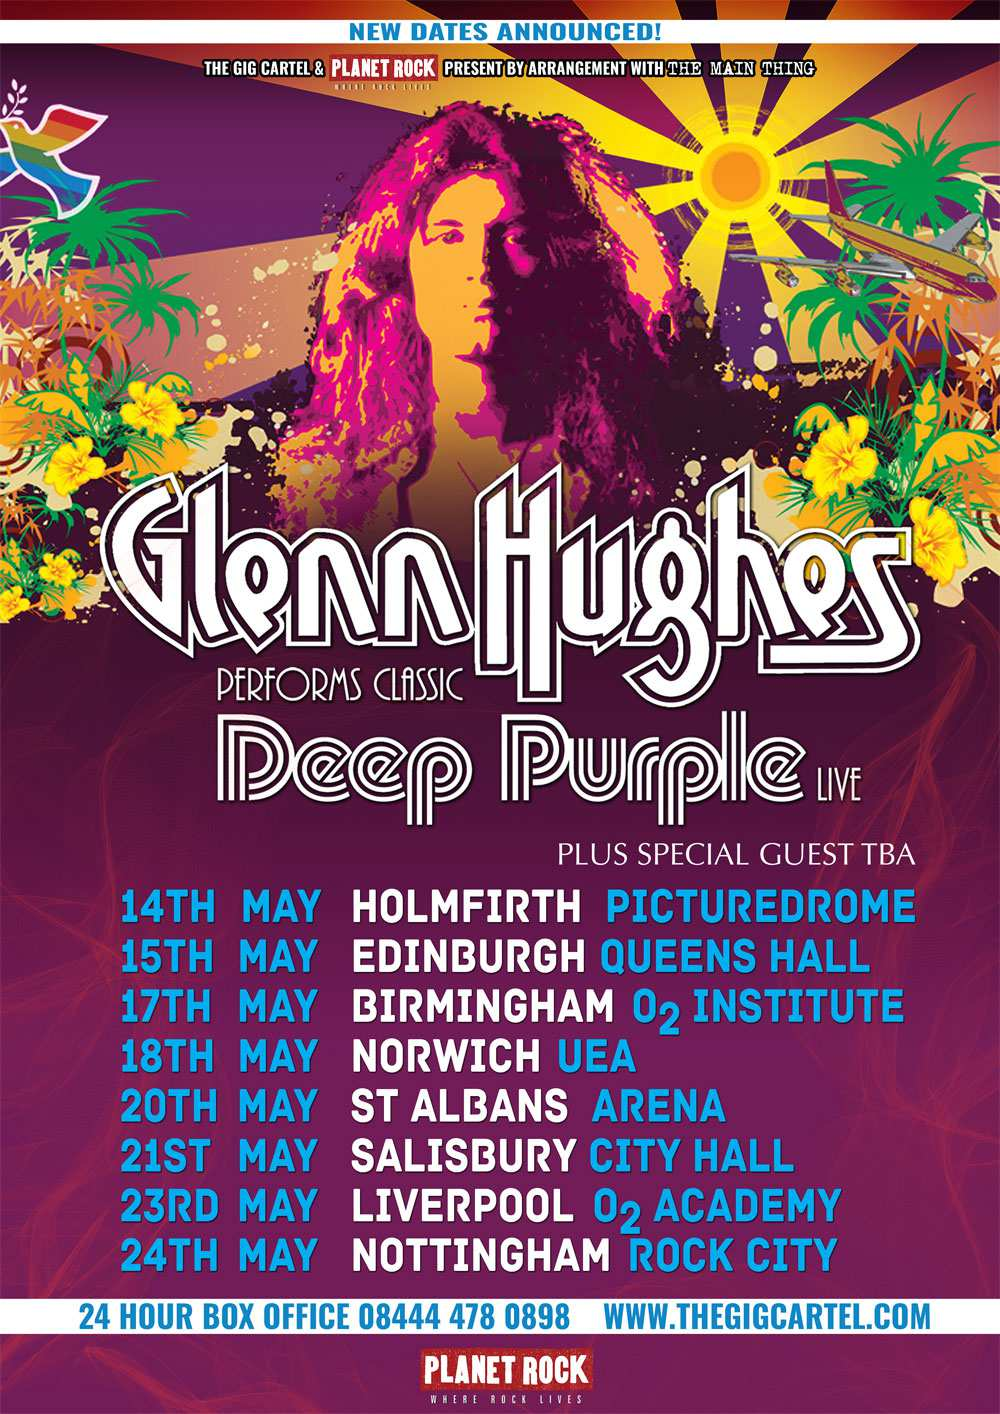 Glenn Hughes Tour Dates 2019